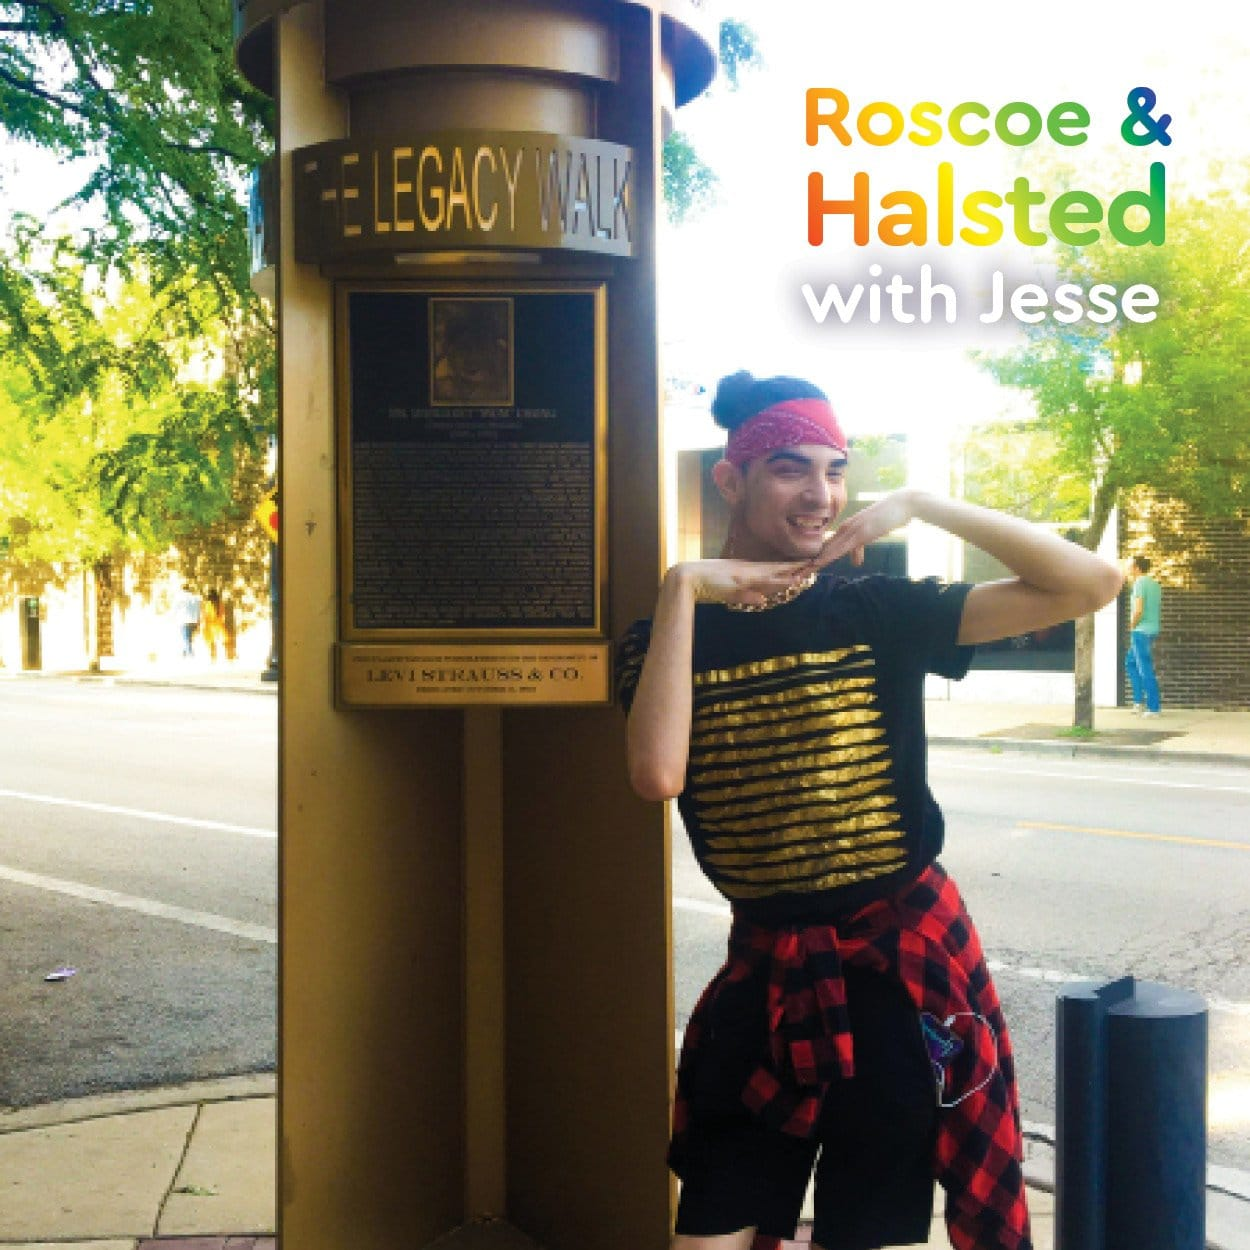 Jesse at Roscoe & Halsted